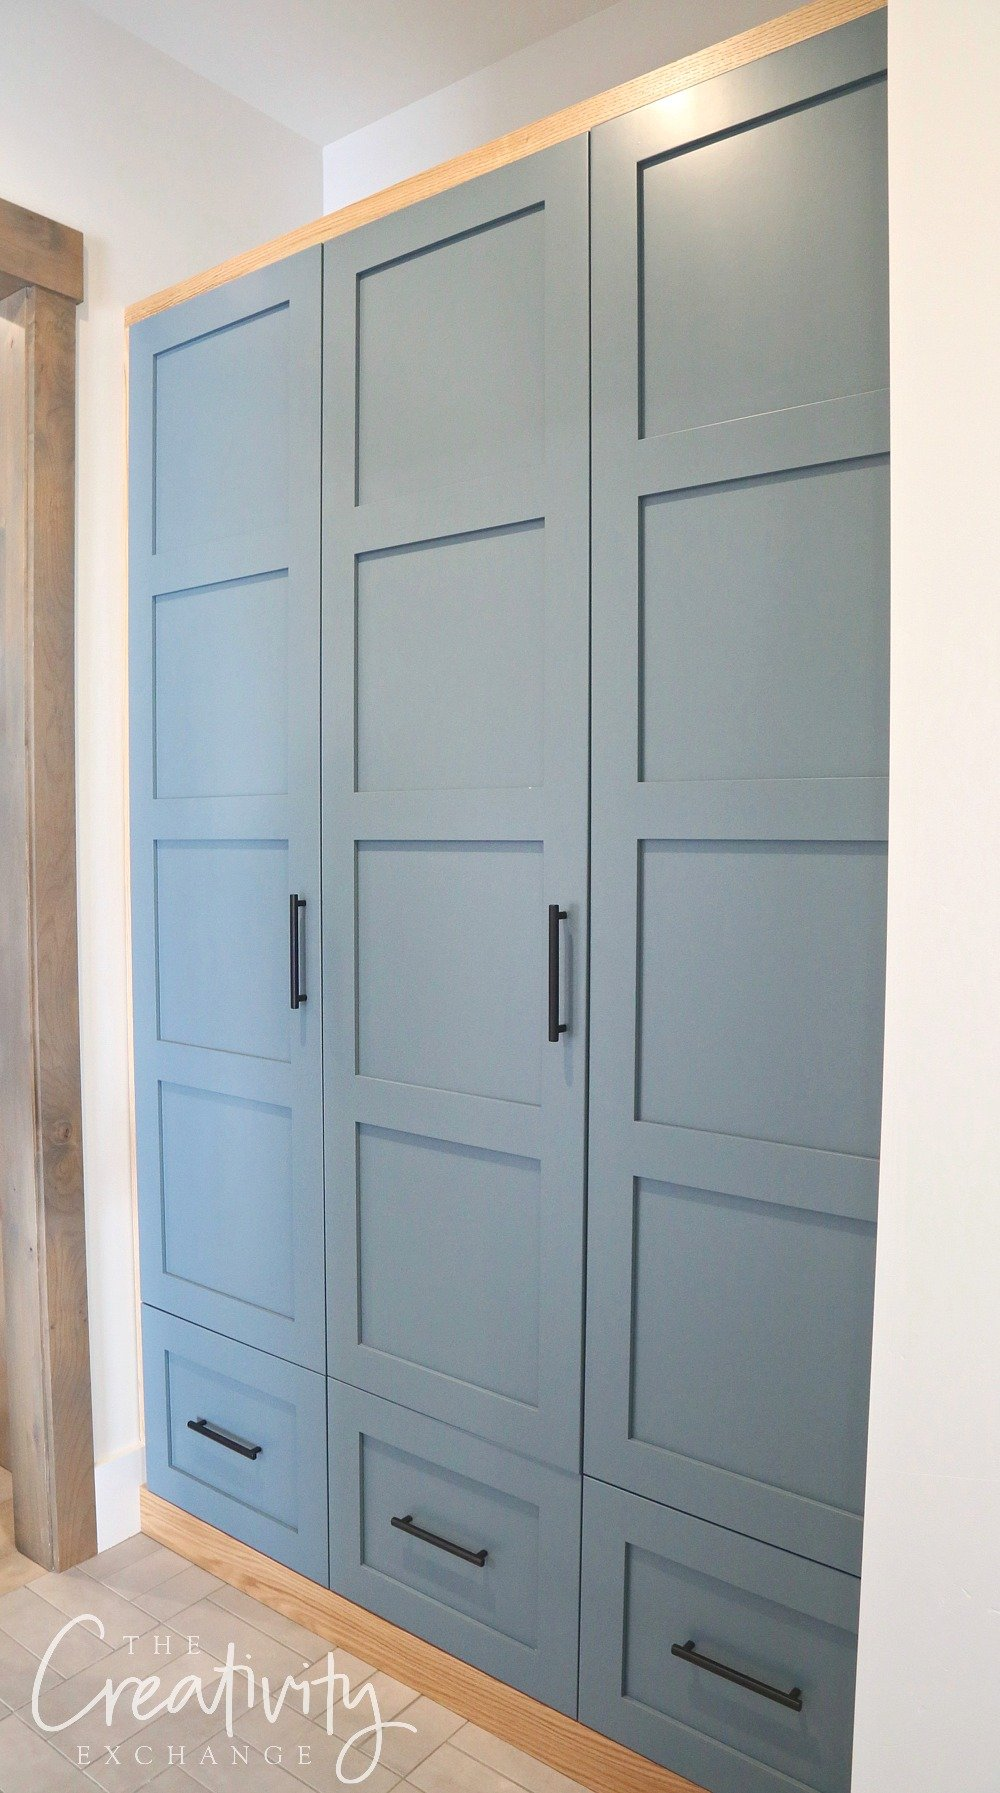 Mudroom cabinetry painted with Sherwin Williams Slate Tile